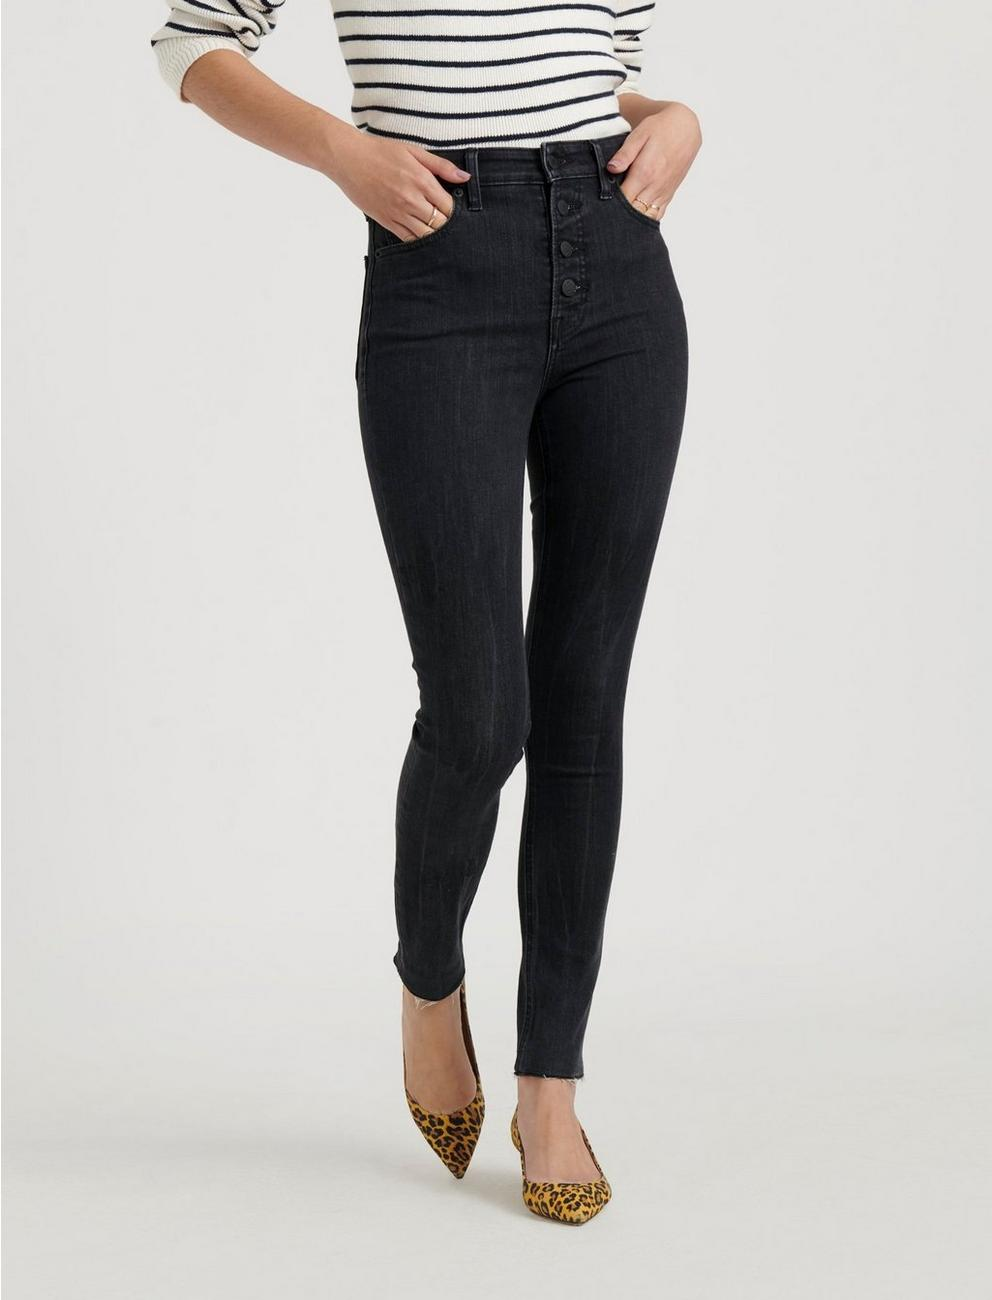 HIGH RISE BRIDGETTE SKINNY JEAN, WISHBONE CT